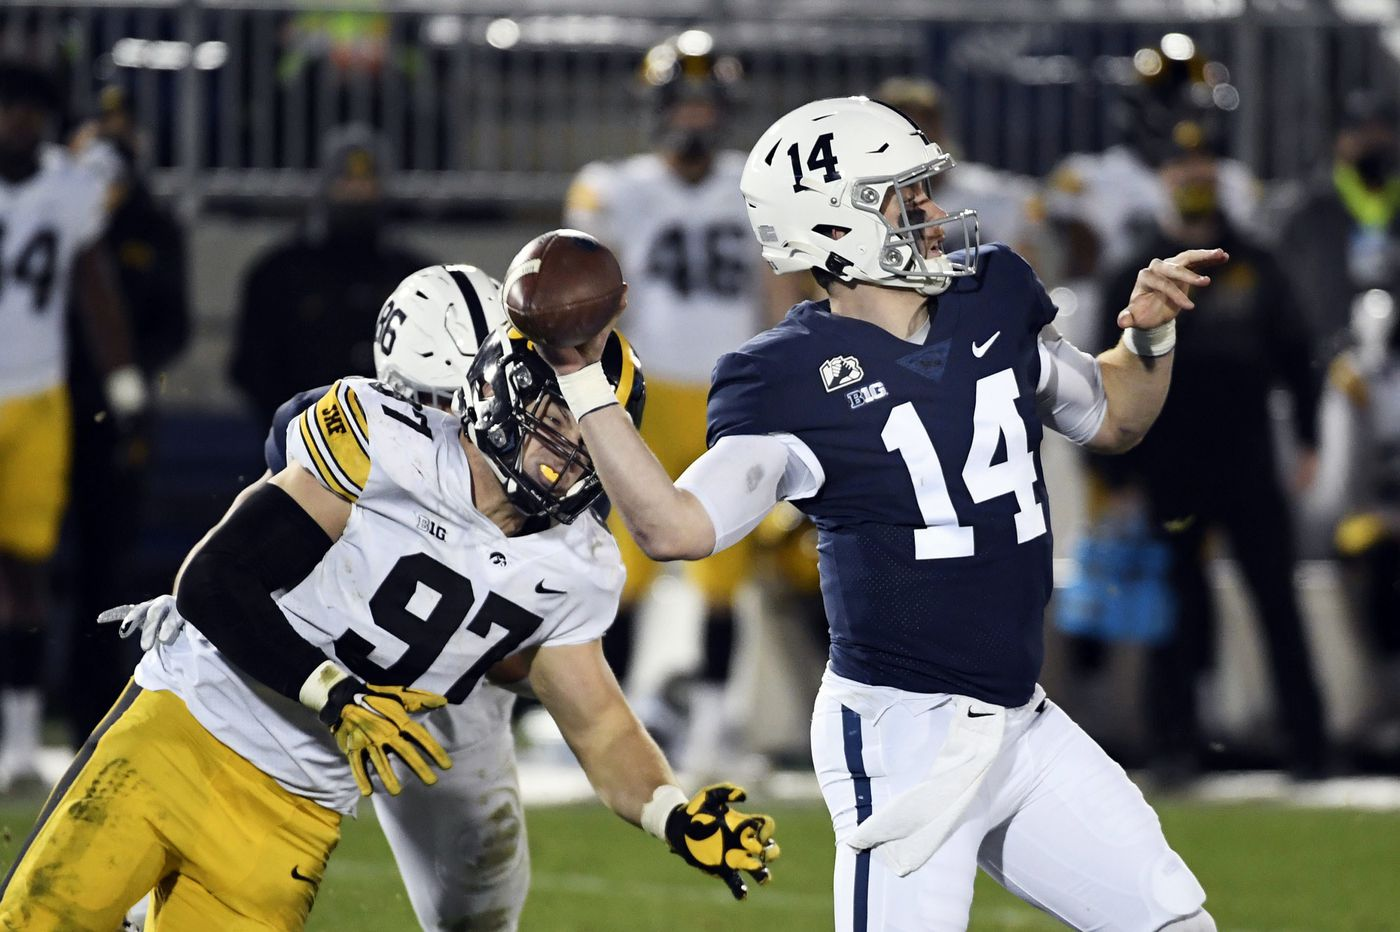 Penn State at Michigan: Which team can overcome its issues better?